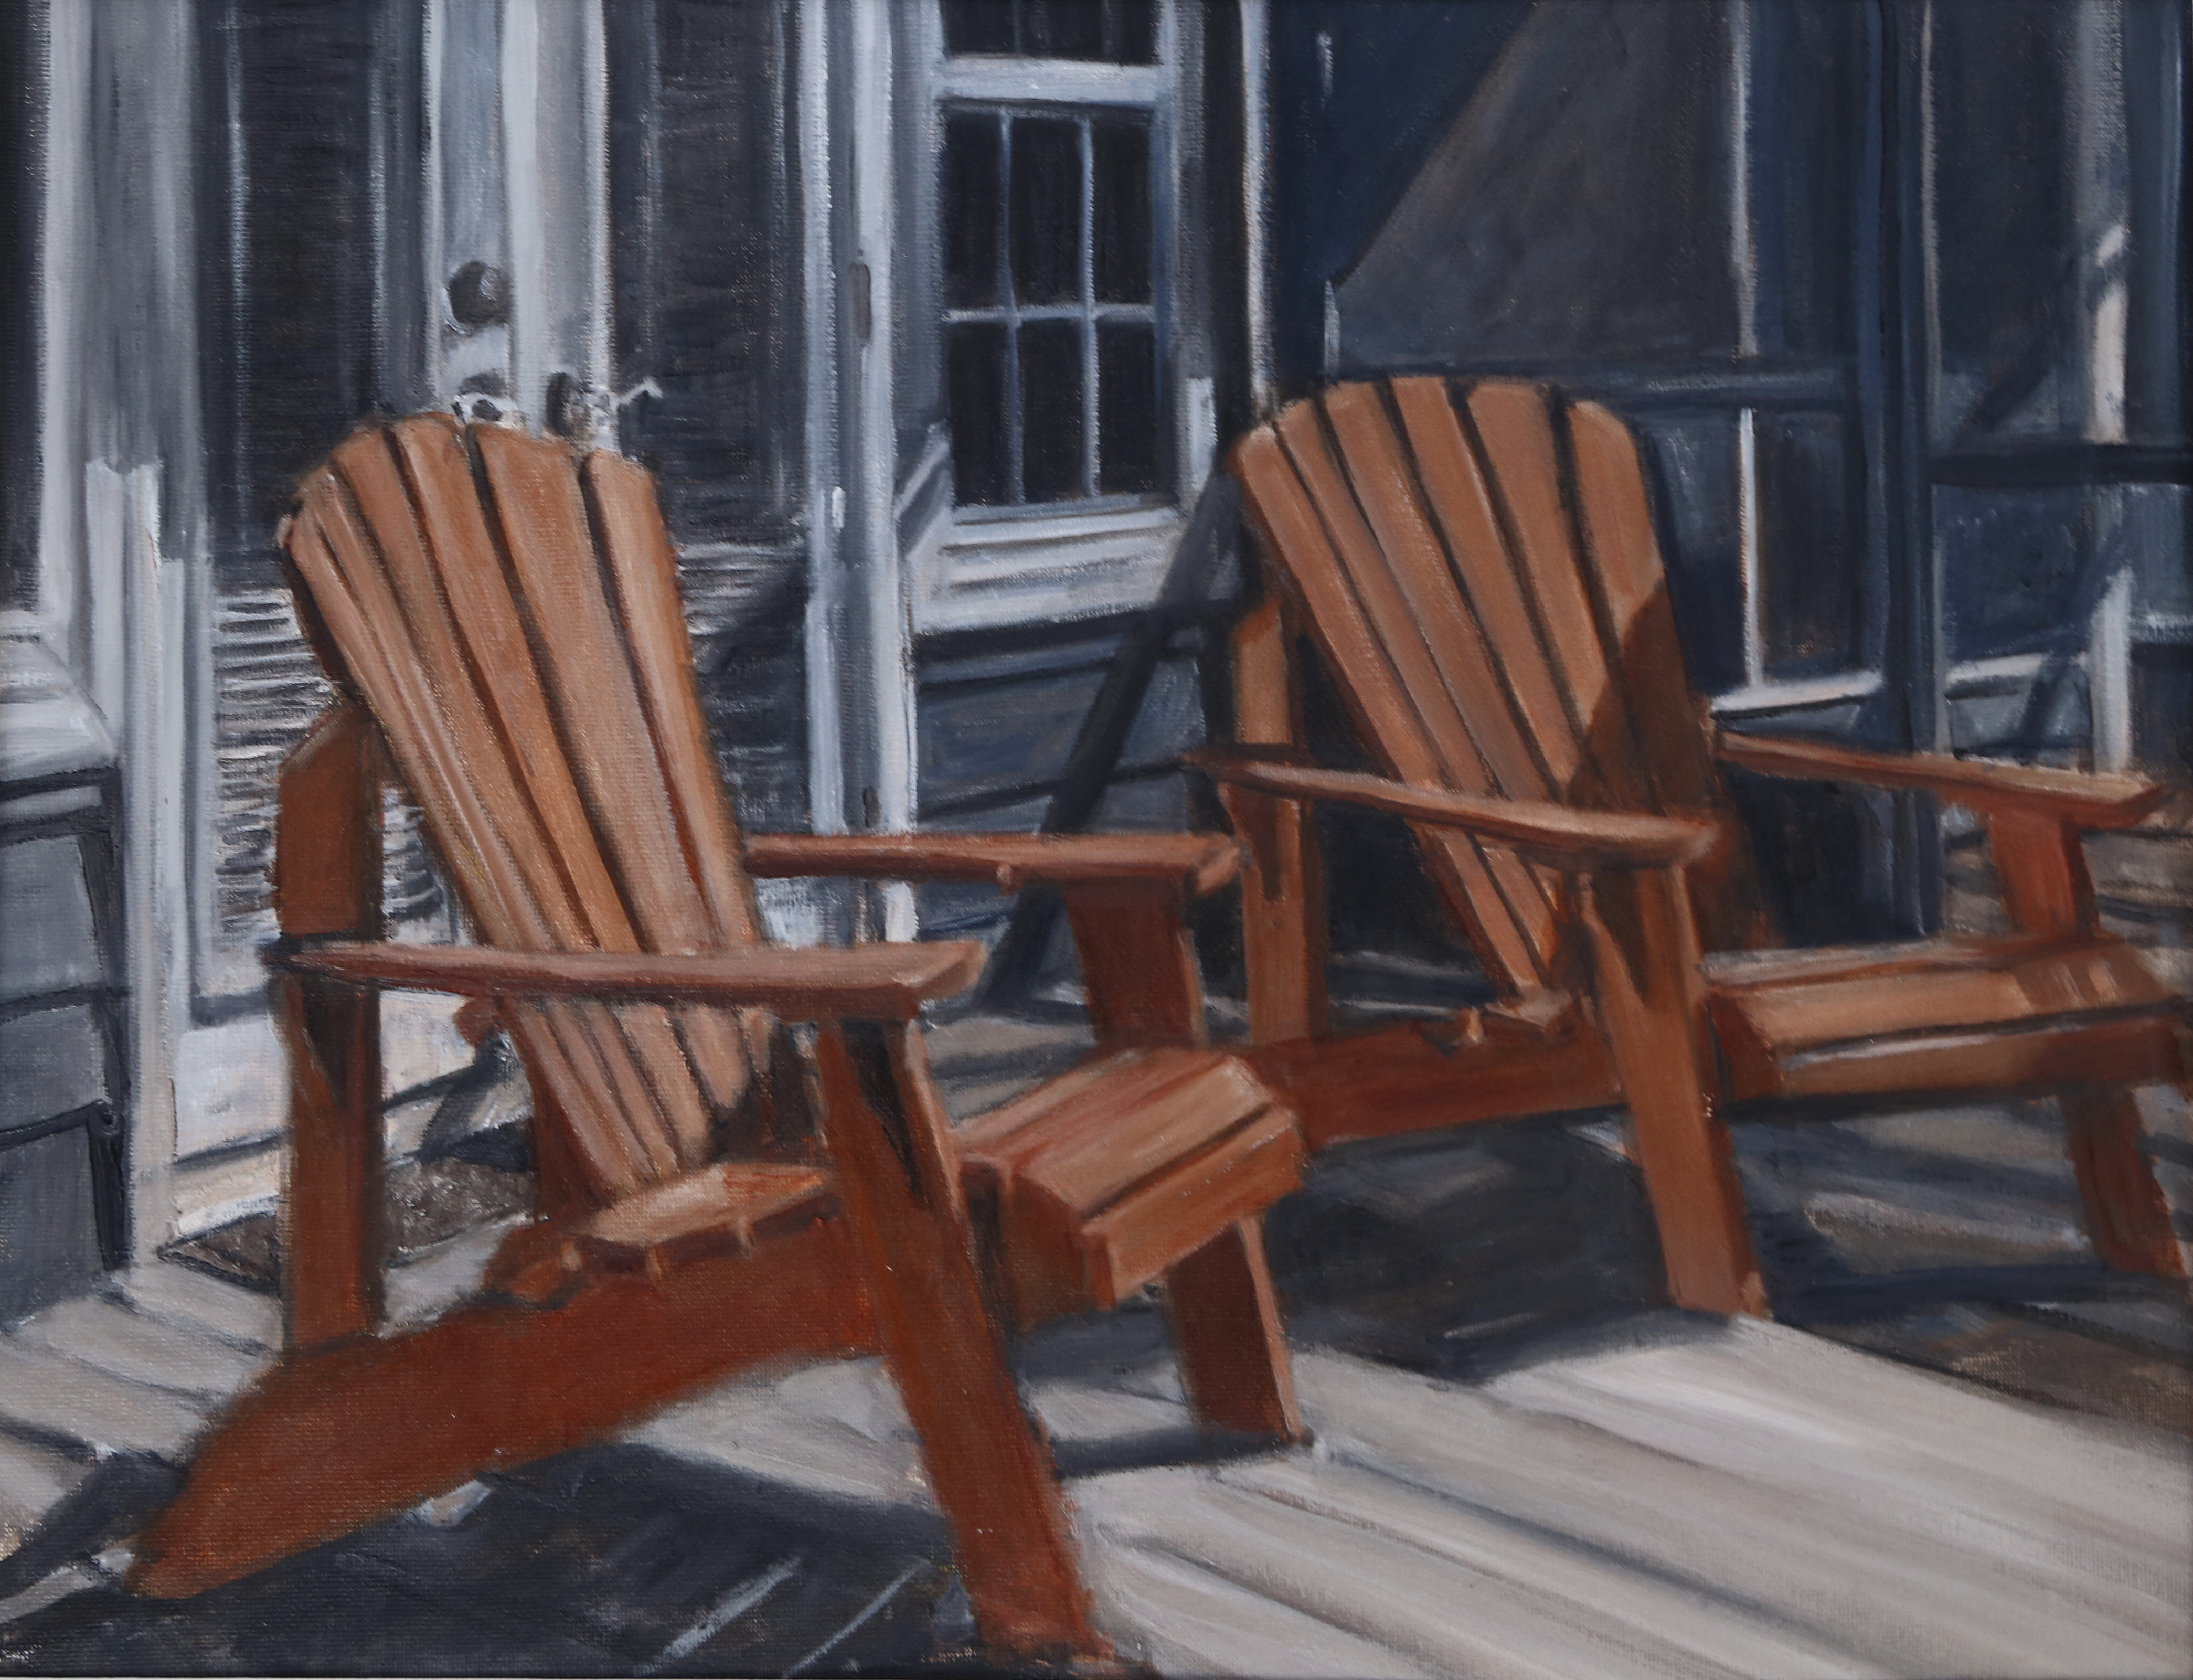 'No Guests', oil on canvas by Elaine Stecker ($250)